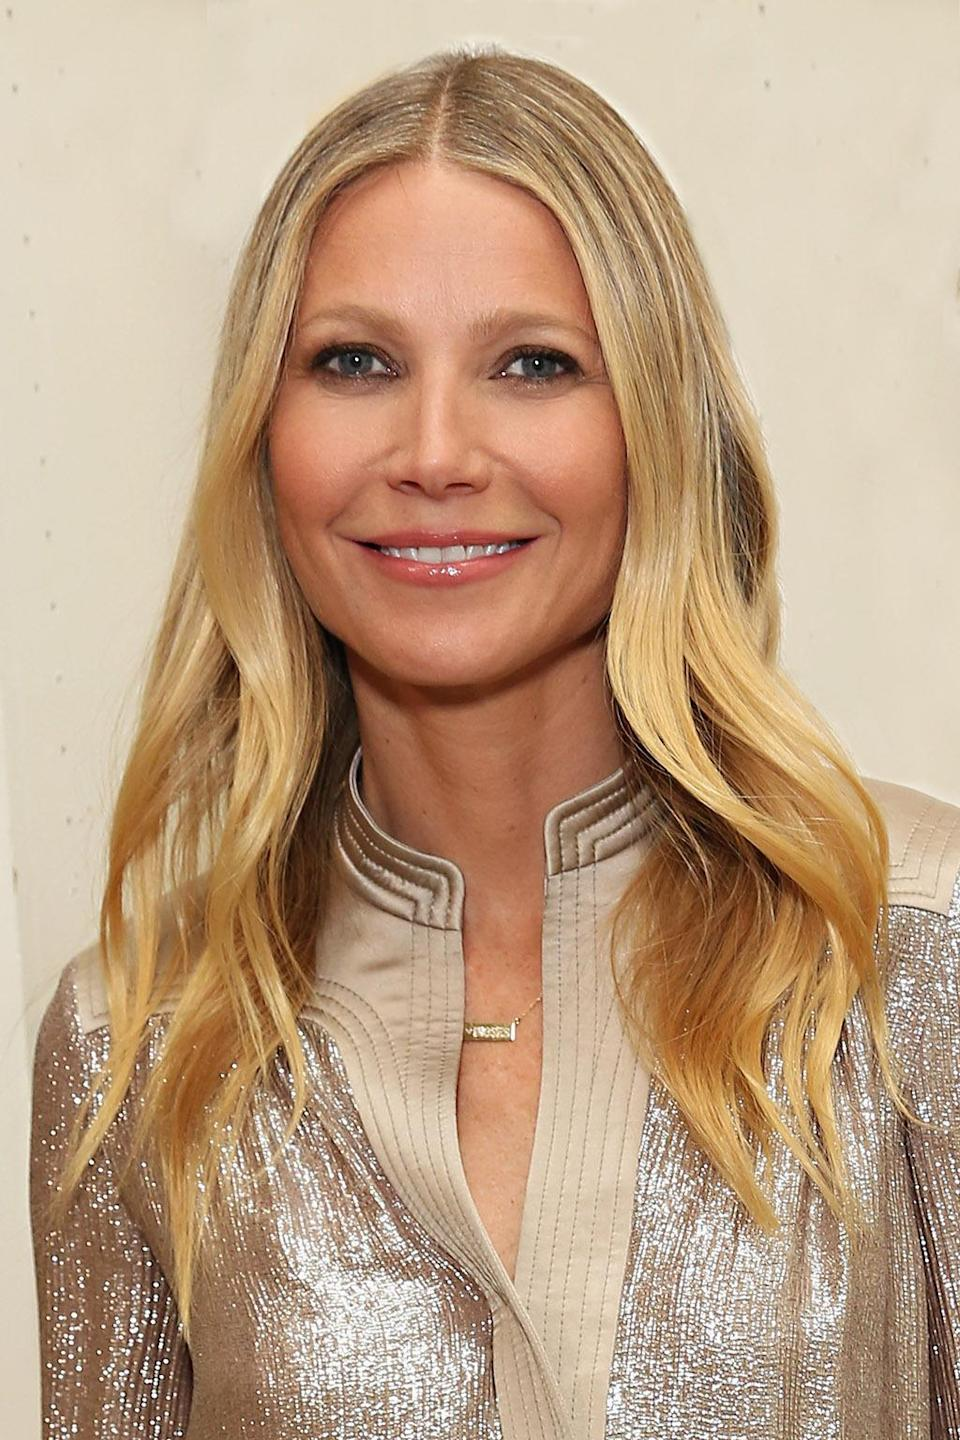 """<p><b>Gwyneth Paltrow</b></p><p>Luckily for us, Paltrow is no stranger when it comes to dishing her beauty routine. Most recently, the actress told <i>The New York Times </i>that she used to be <a href=""""http://www.nytimes.com/2016/04/07/fashion/gwyneth-paltrow-juice-beauty-goop.html?_r=1"""" rel=""""nofollow noopener"""" target=""""_blank"""" data-ylk=""""slk:stung by hundreds of bees"""" class=""""link rapid-noclick-resp"""">stung by hundreds of bees</a> as one of her go-to anti-aging treatments. Could it be nature's botox? It actually sounds more painful!<br></p><p><br></p>"""